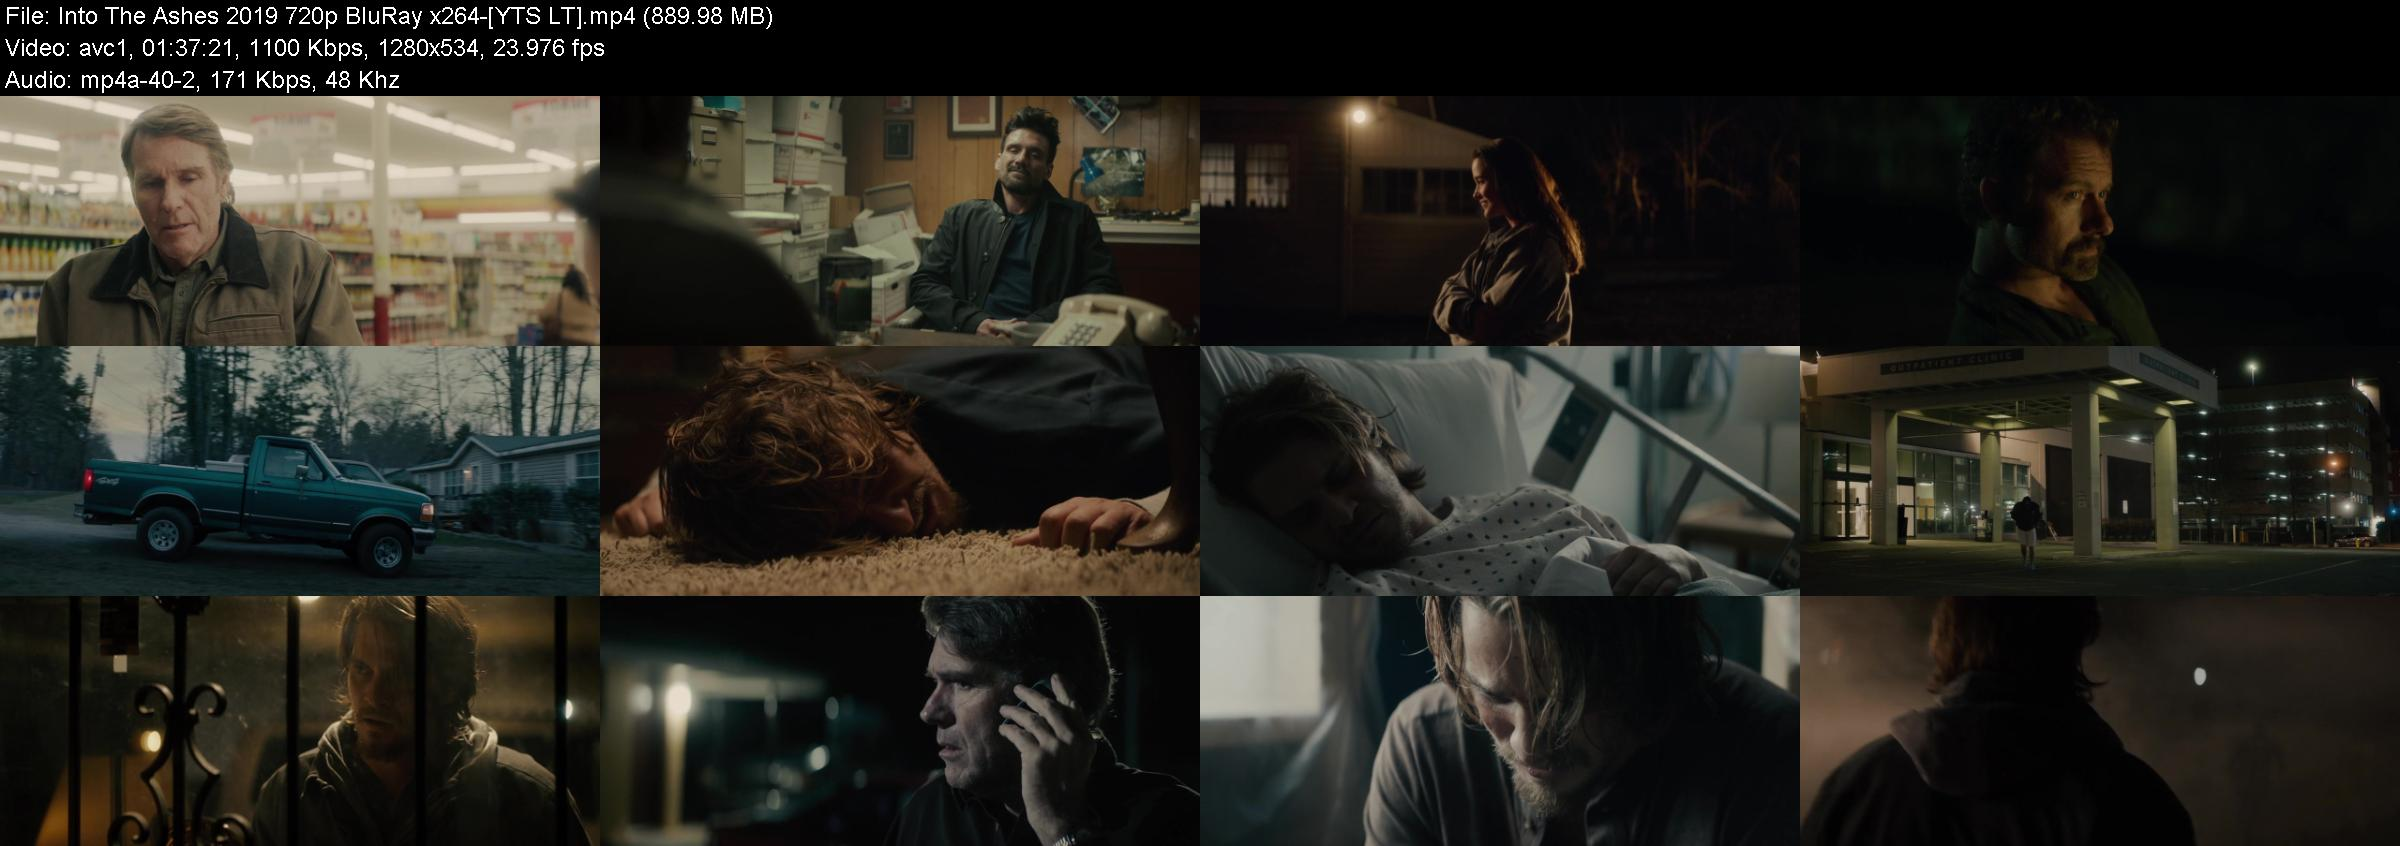 Into The Ashes (2019) BluRay 720p YIFY